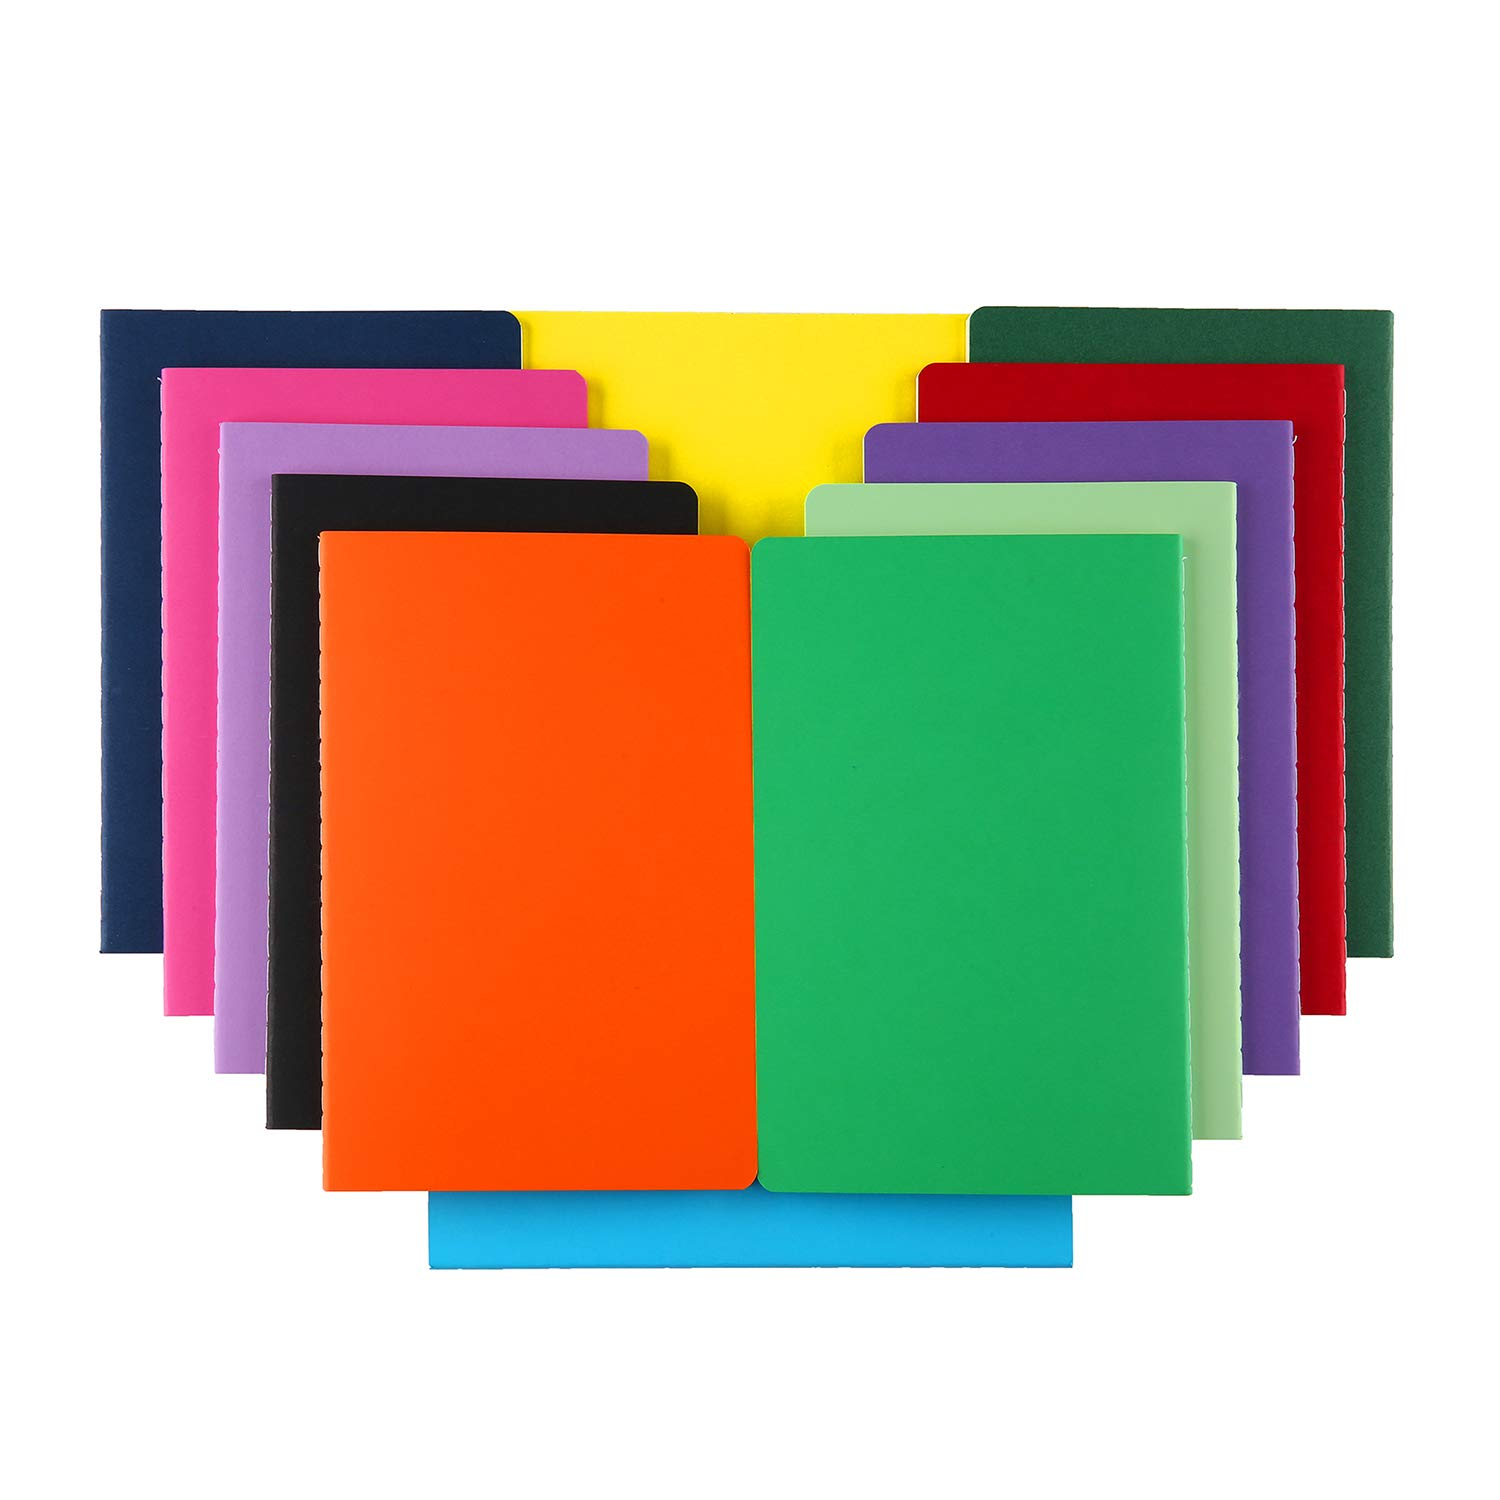 XYark 12 PCS Colorful Blank Notebook Journals Bulk, 60 Pages, 5.5 x8.3 inch, A5 Unlined Travel Journal Set for Travelers, Kids, Students and Office, Writing Drawing Sketchbook Diary Subject Notebooks